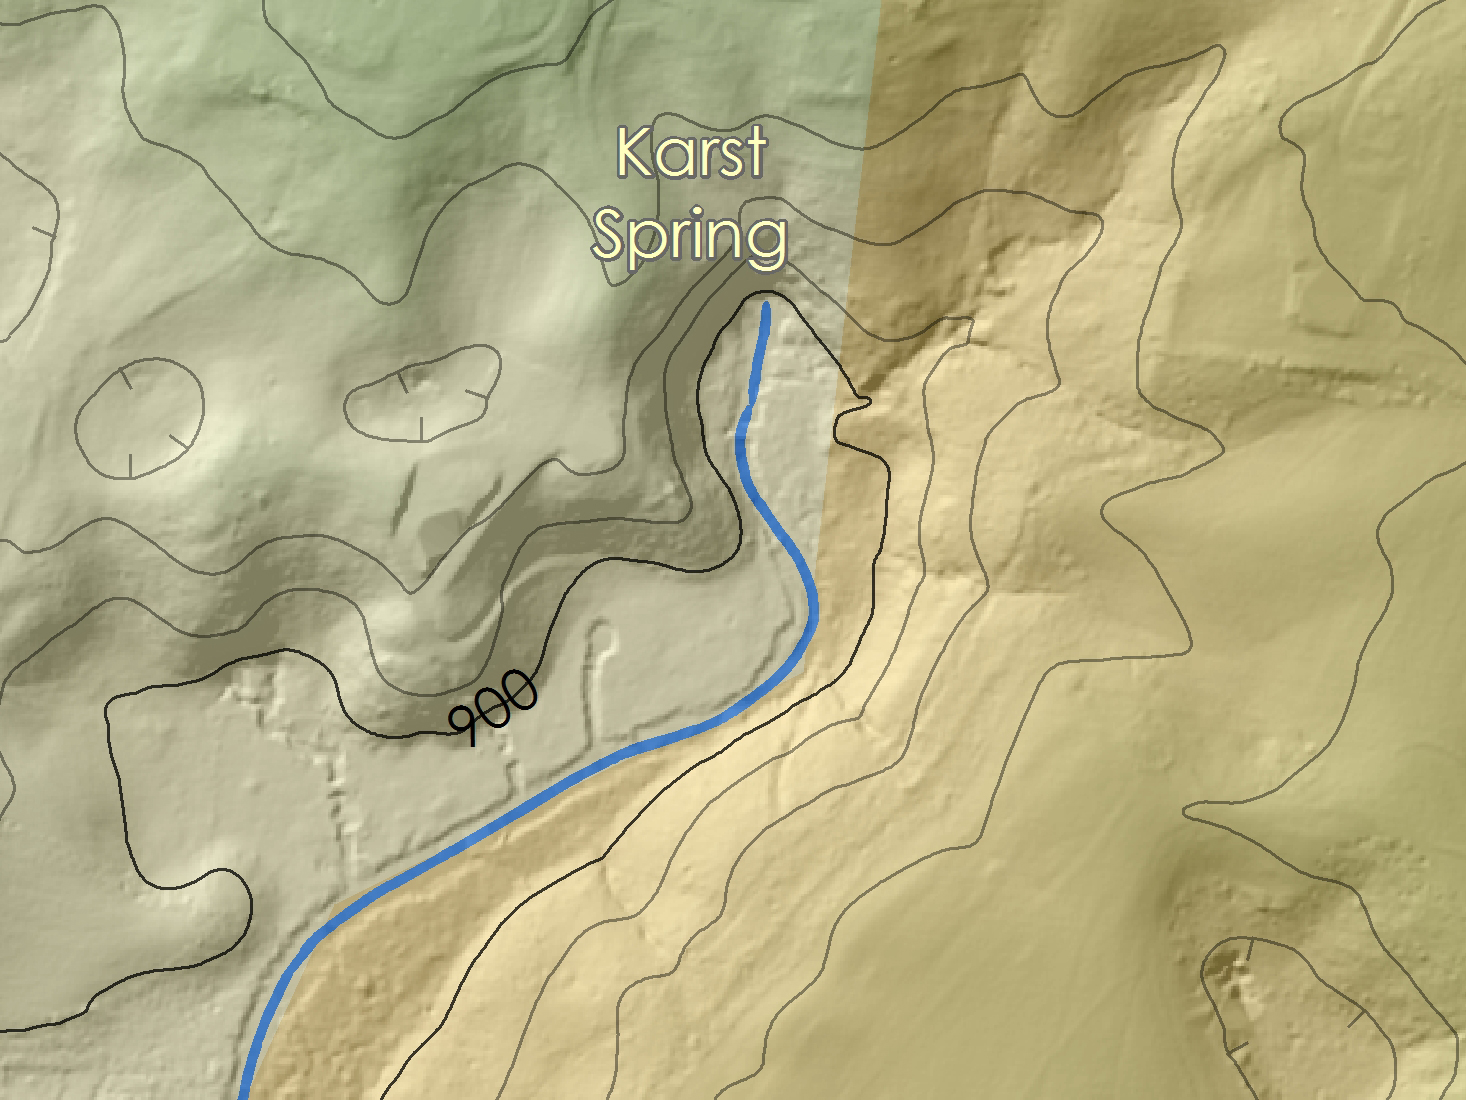 By Following Town Spring To Its Source You Can Find This Location On The Map Karst Springs Are Places Where